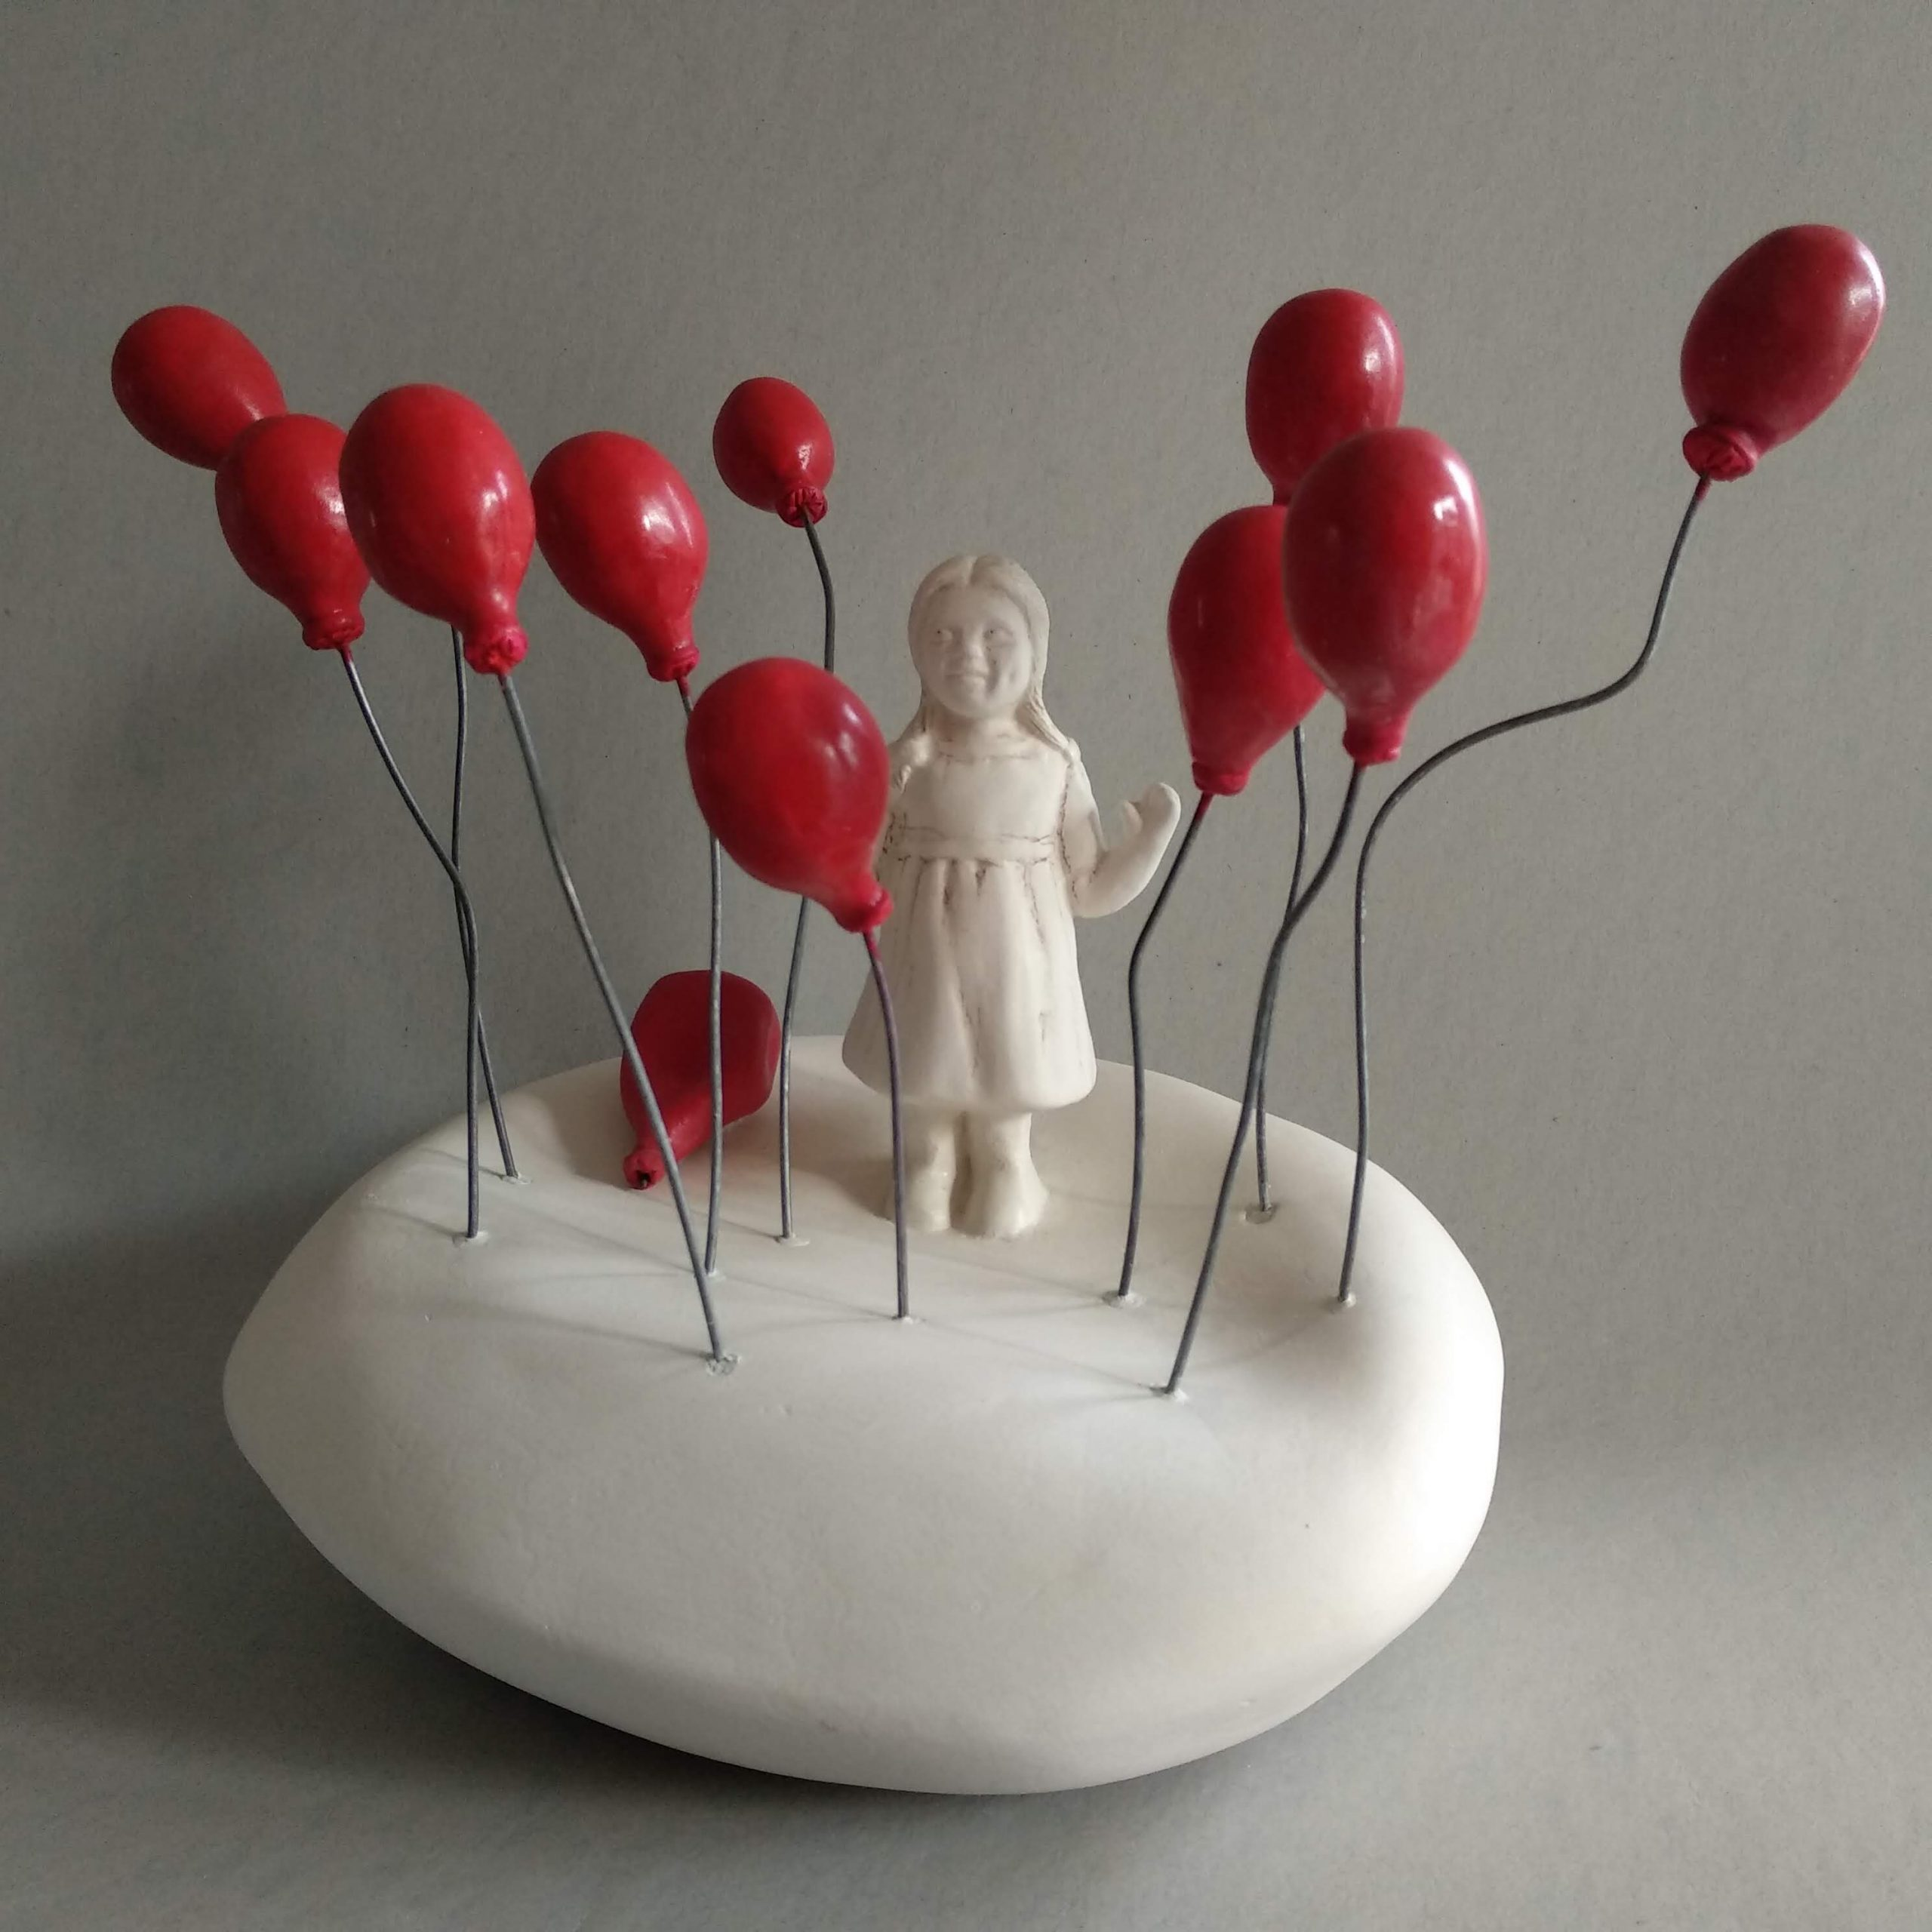 My Red Baloons